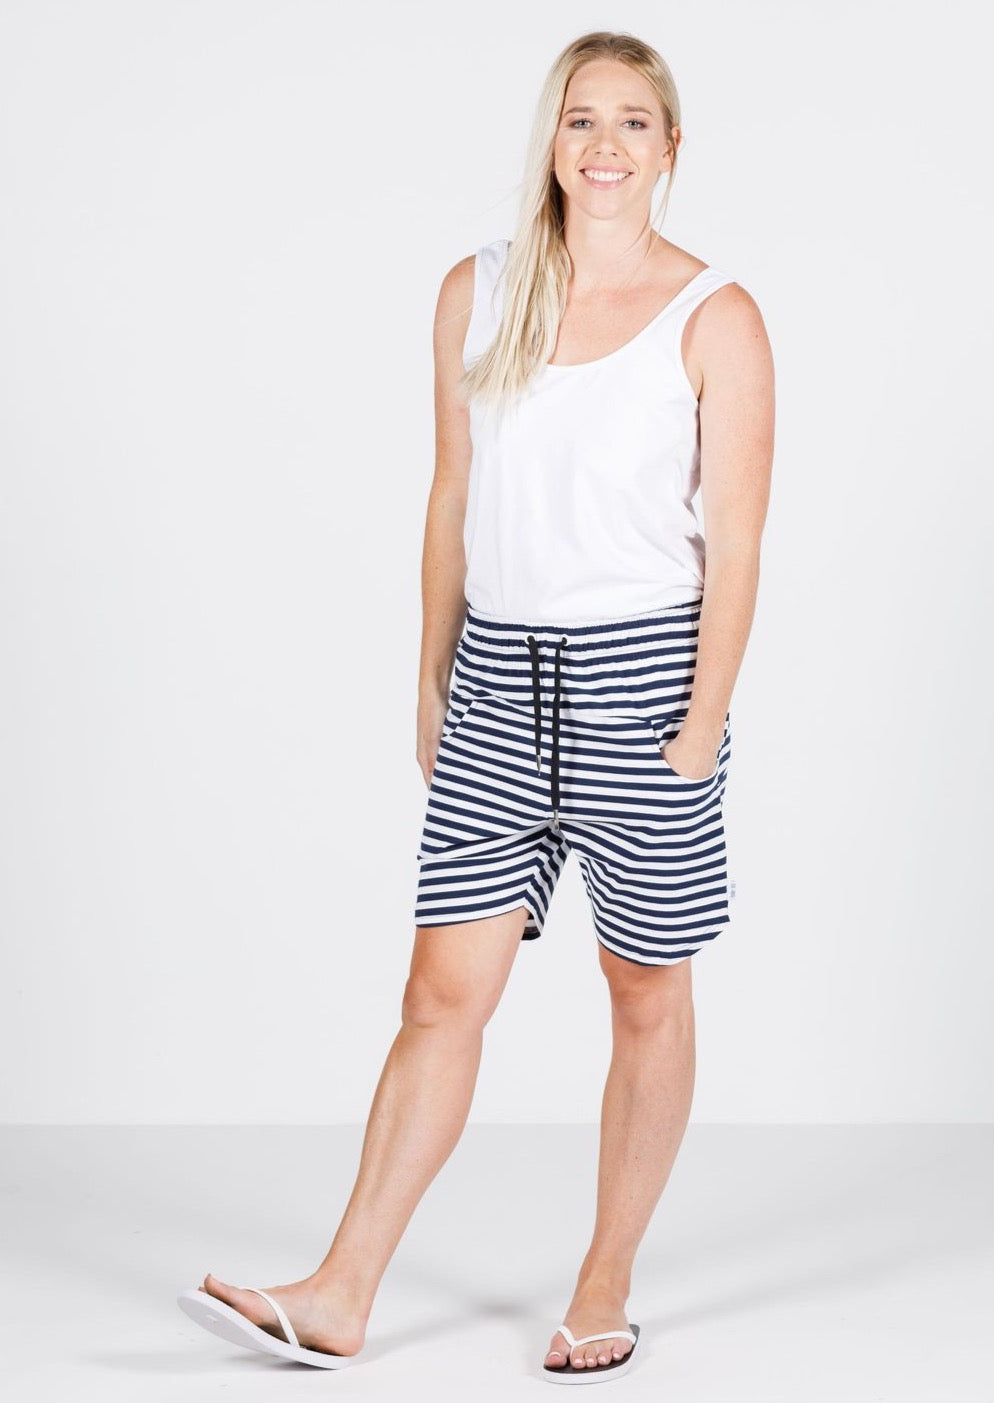 Apartment Shorts - Navy/White Stripe